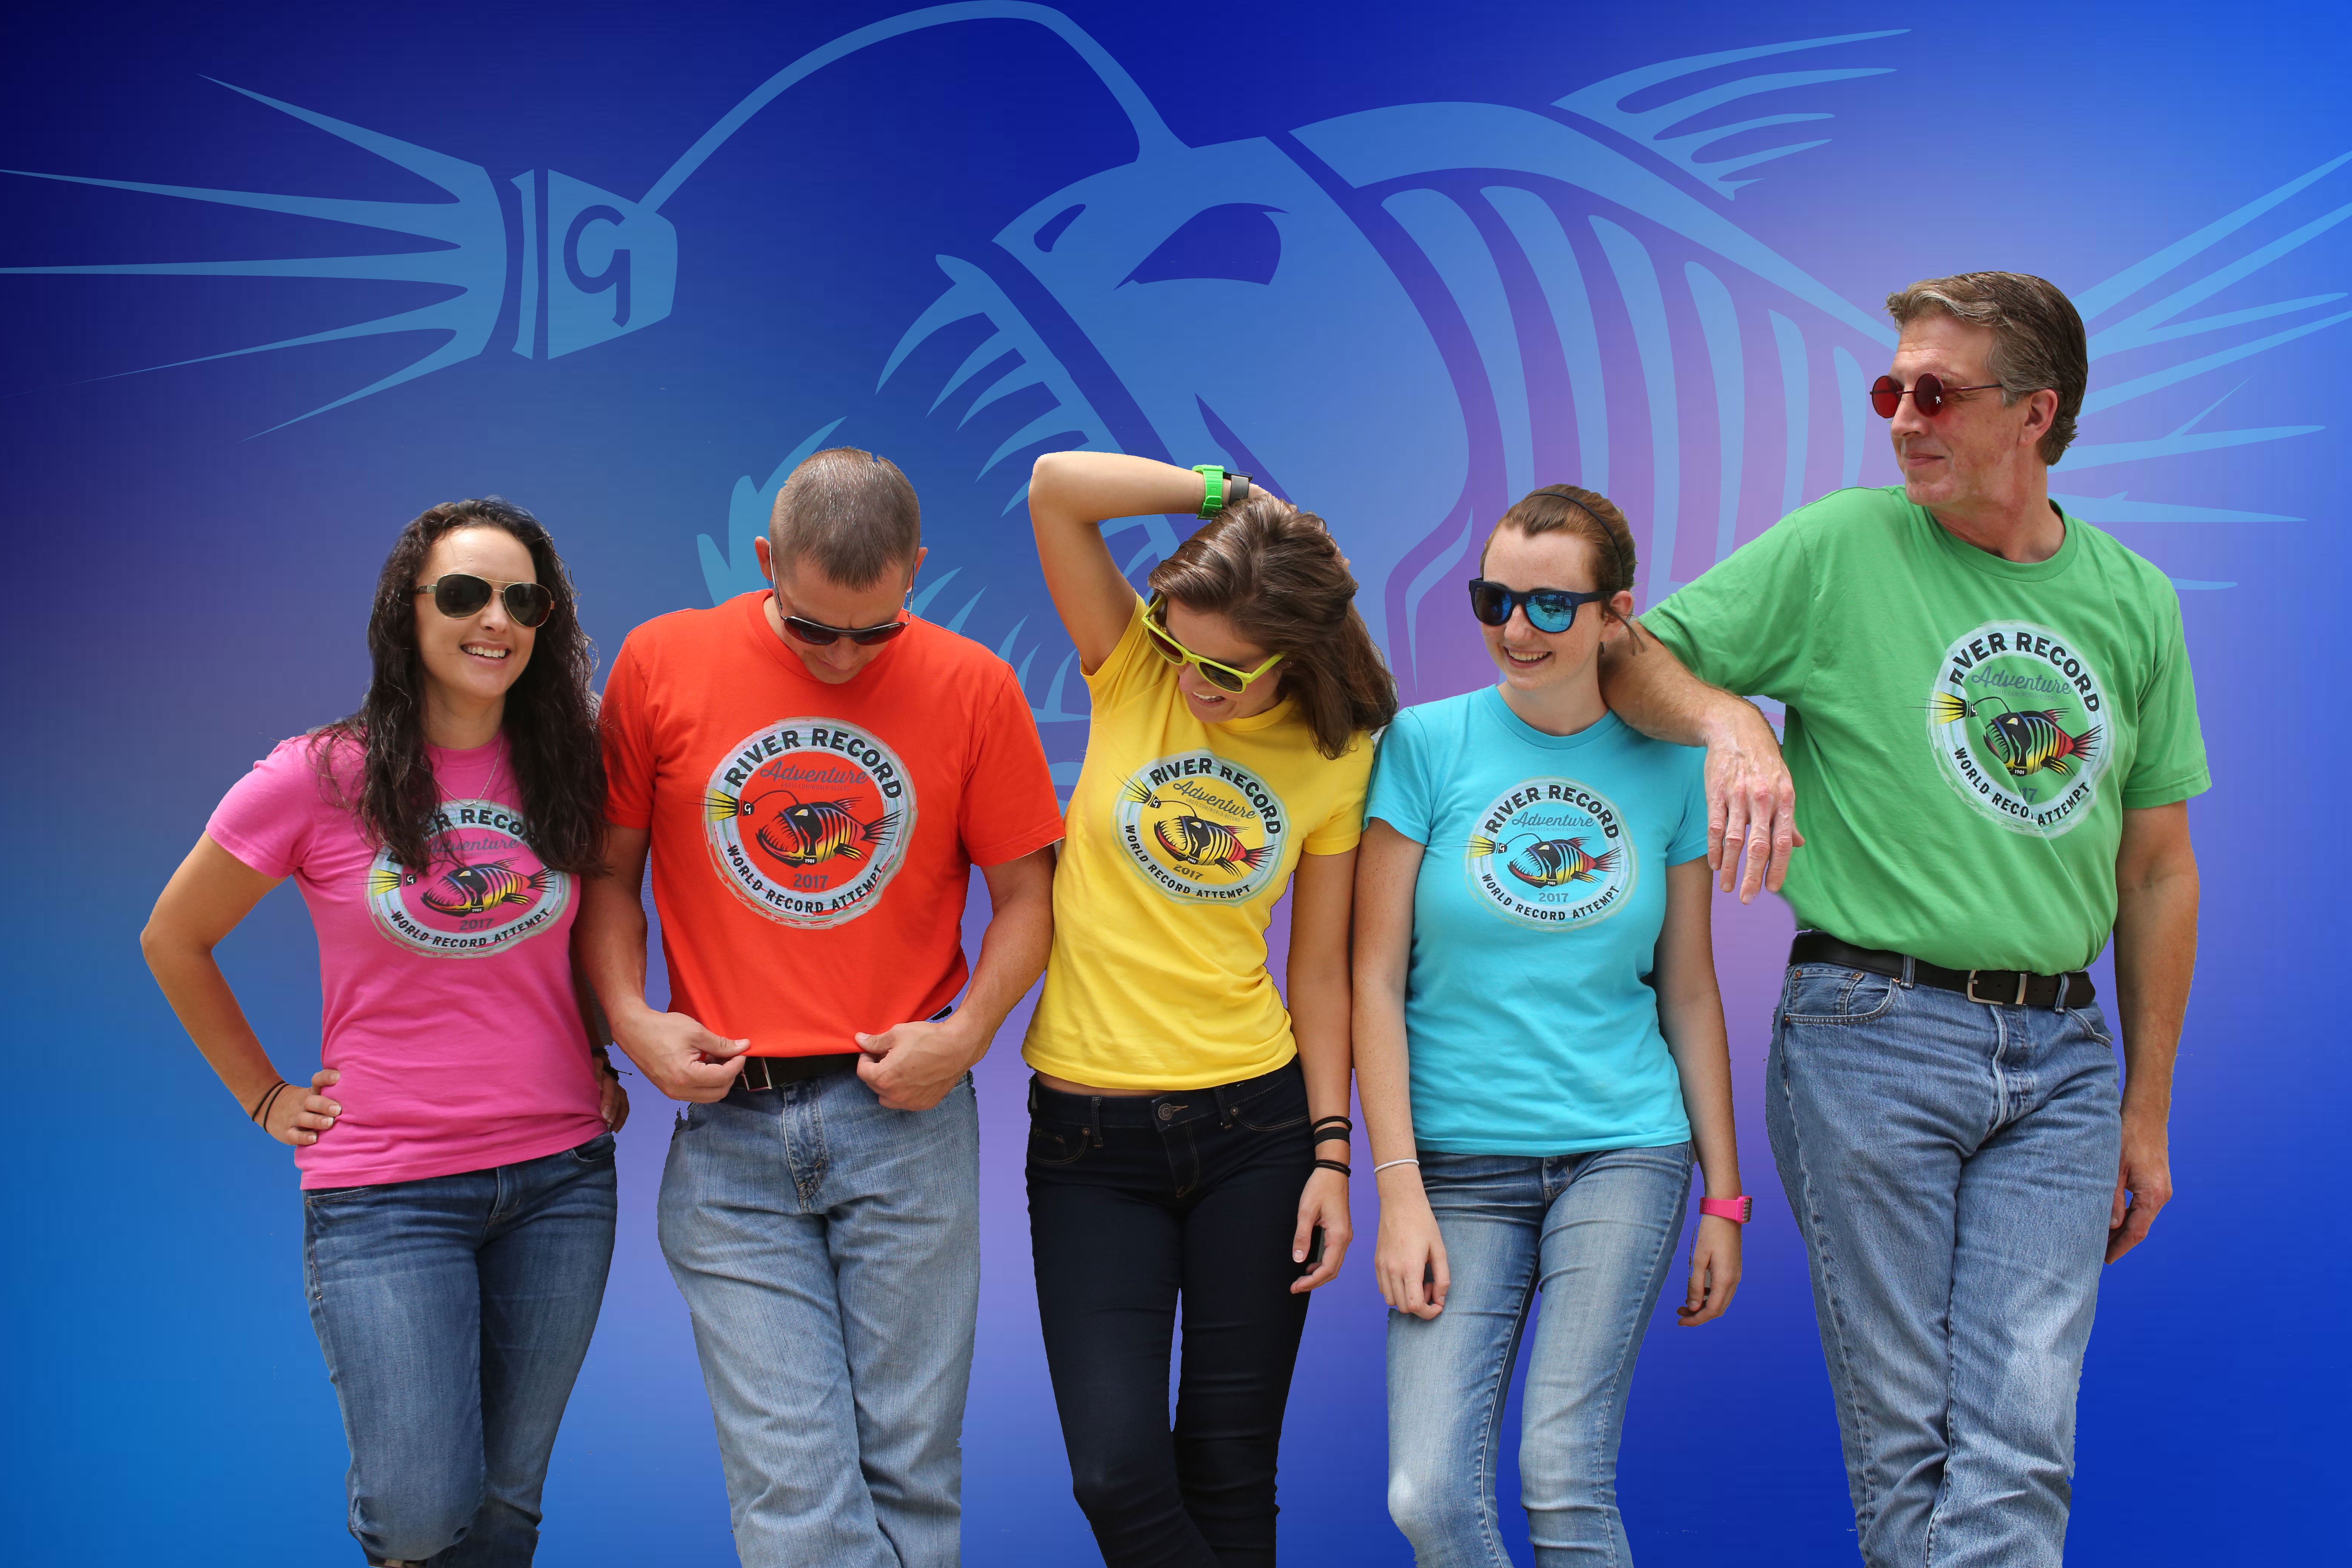 Grote marketing team wearing River Record Adventure t-shirts